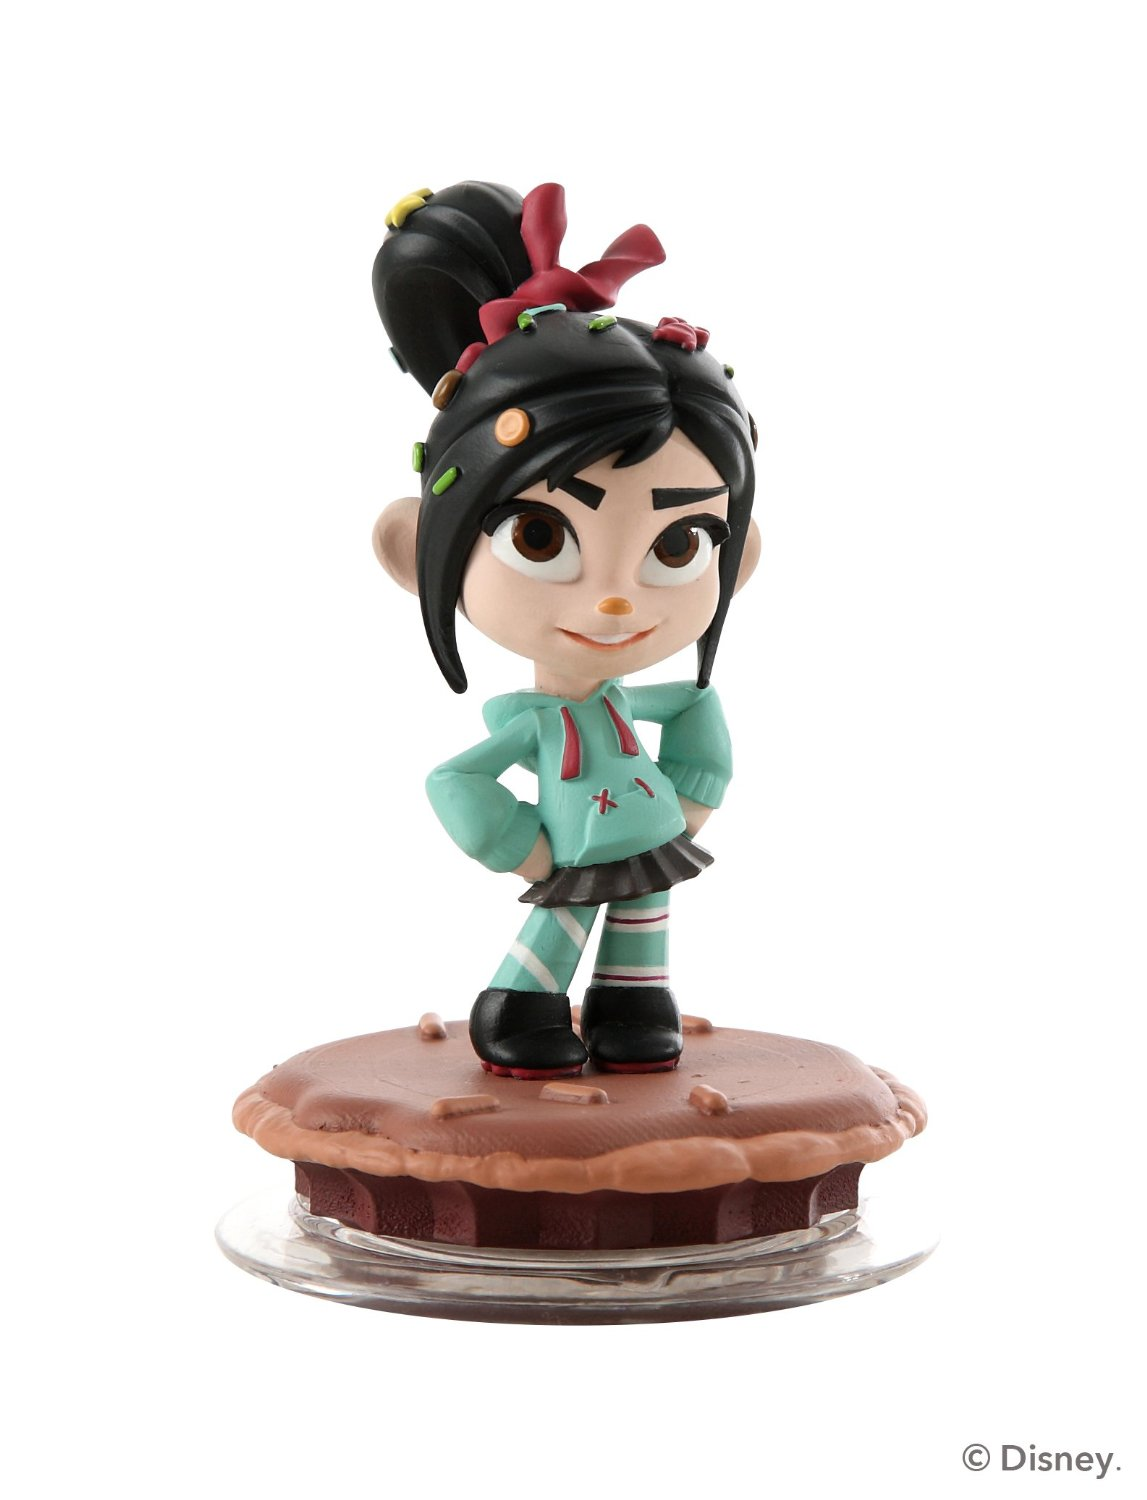 FIG: DISNEY INFINITY 1.0: VANELLOPE (USED)